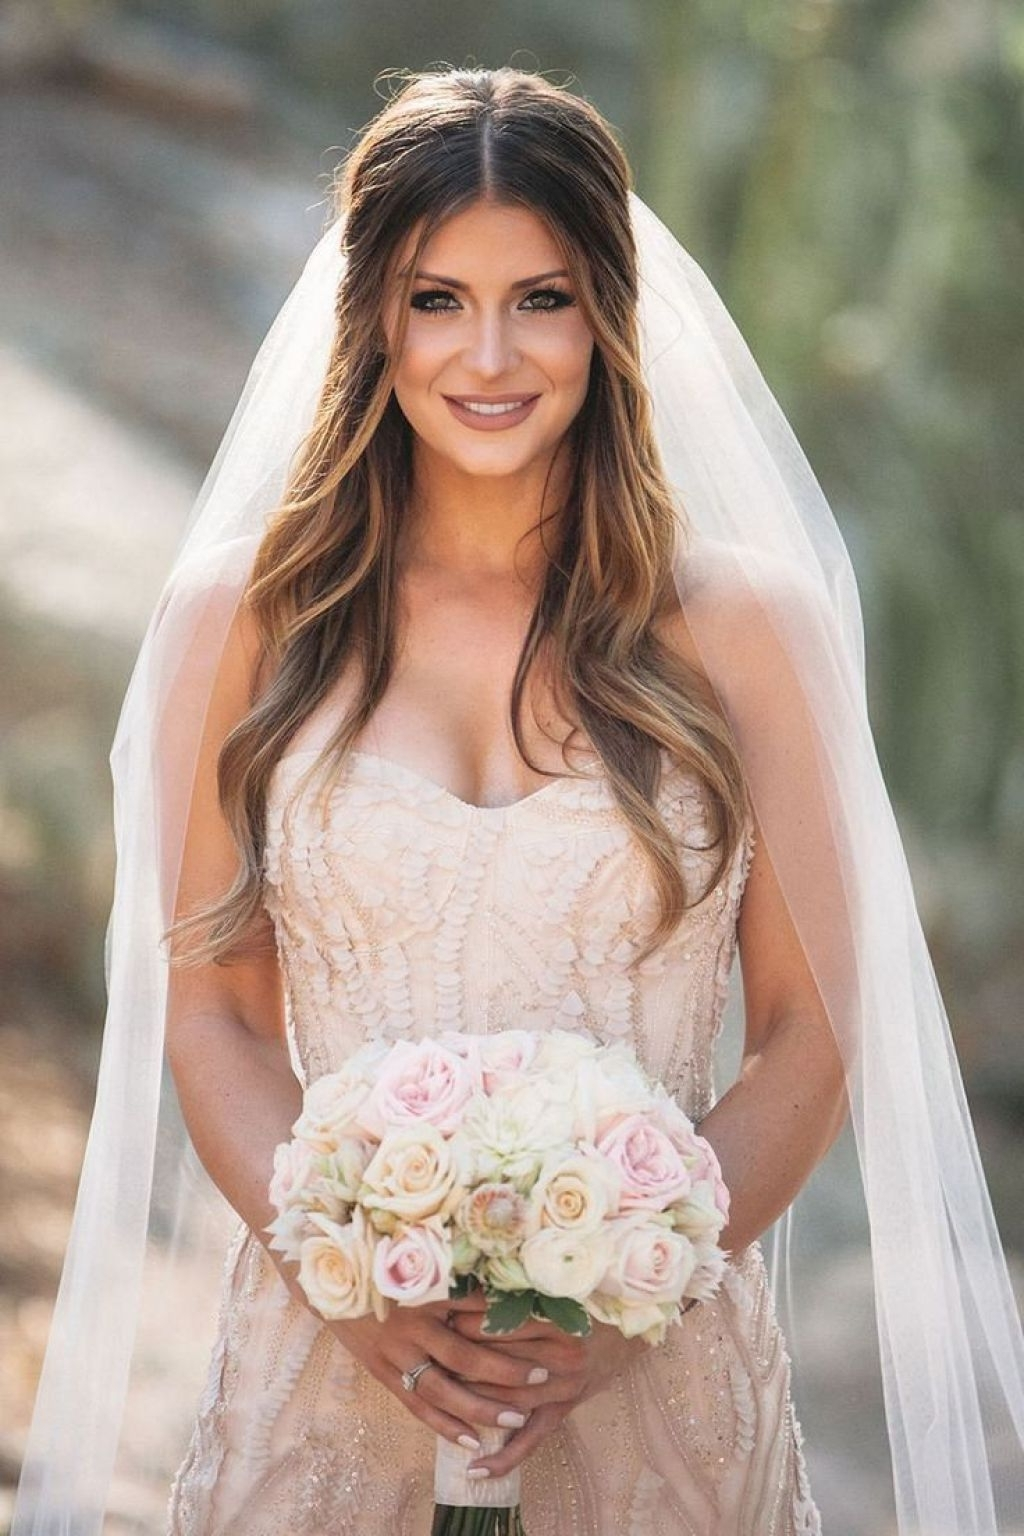 Trendy Bride Hairstyles For Long Hair With Veil Throughout √ 24+ Winning Wedding Hairstyles With Veil: 11 Pretty Hairstyle (View 14 of 15)